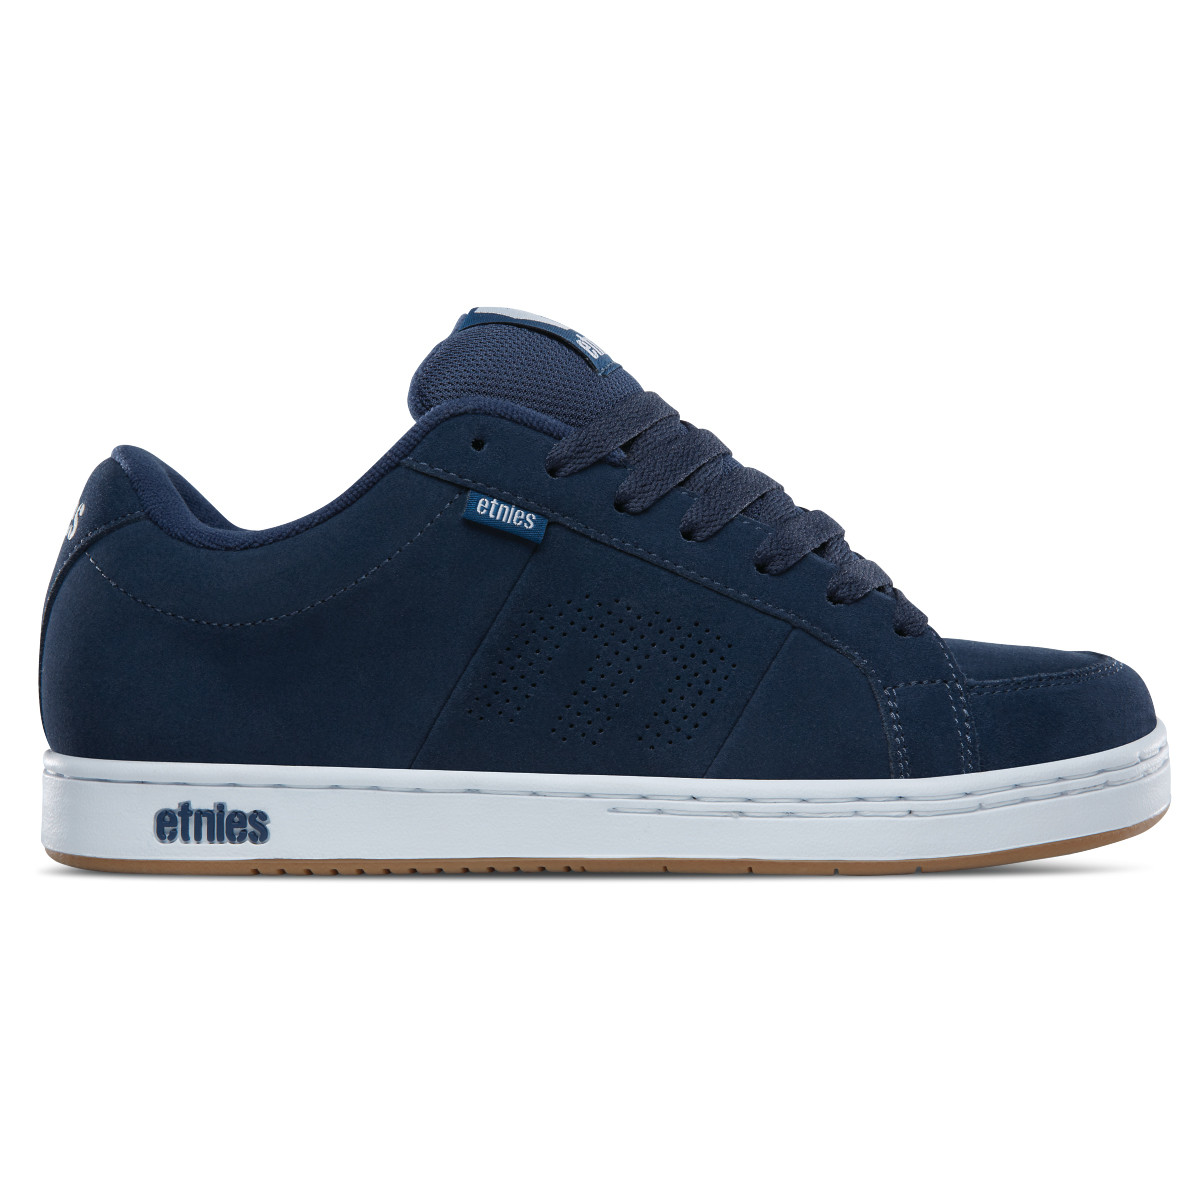 2c48e9610d Etnies Shoes Kingpin Navy White Gum - TGM Skateboards